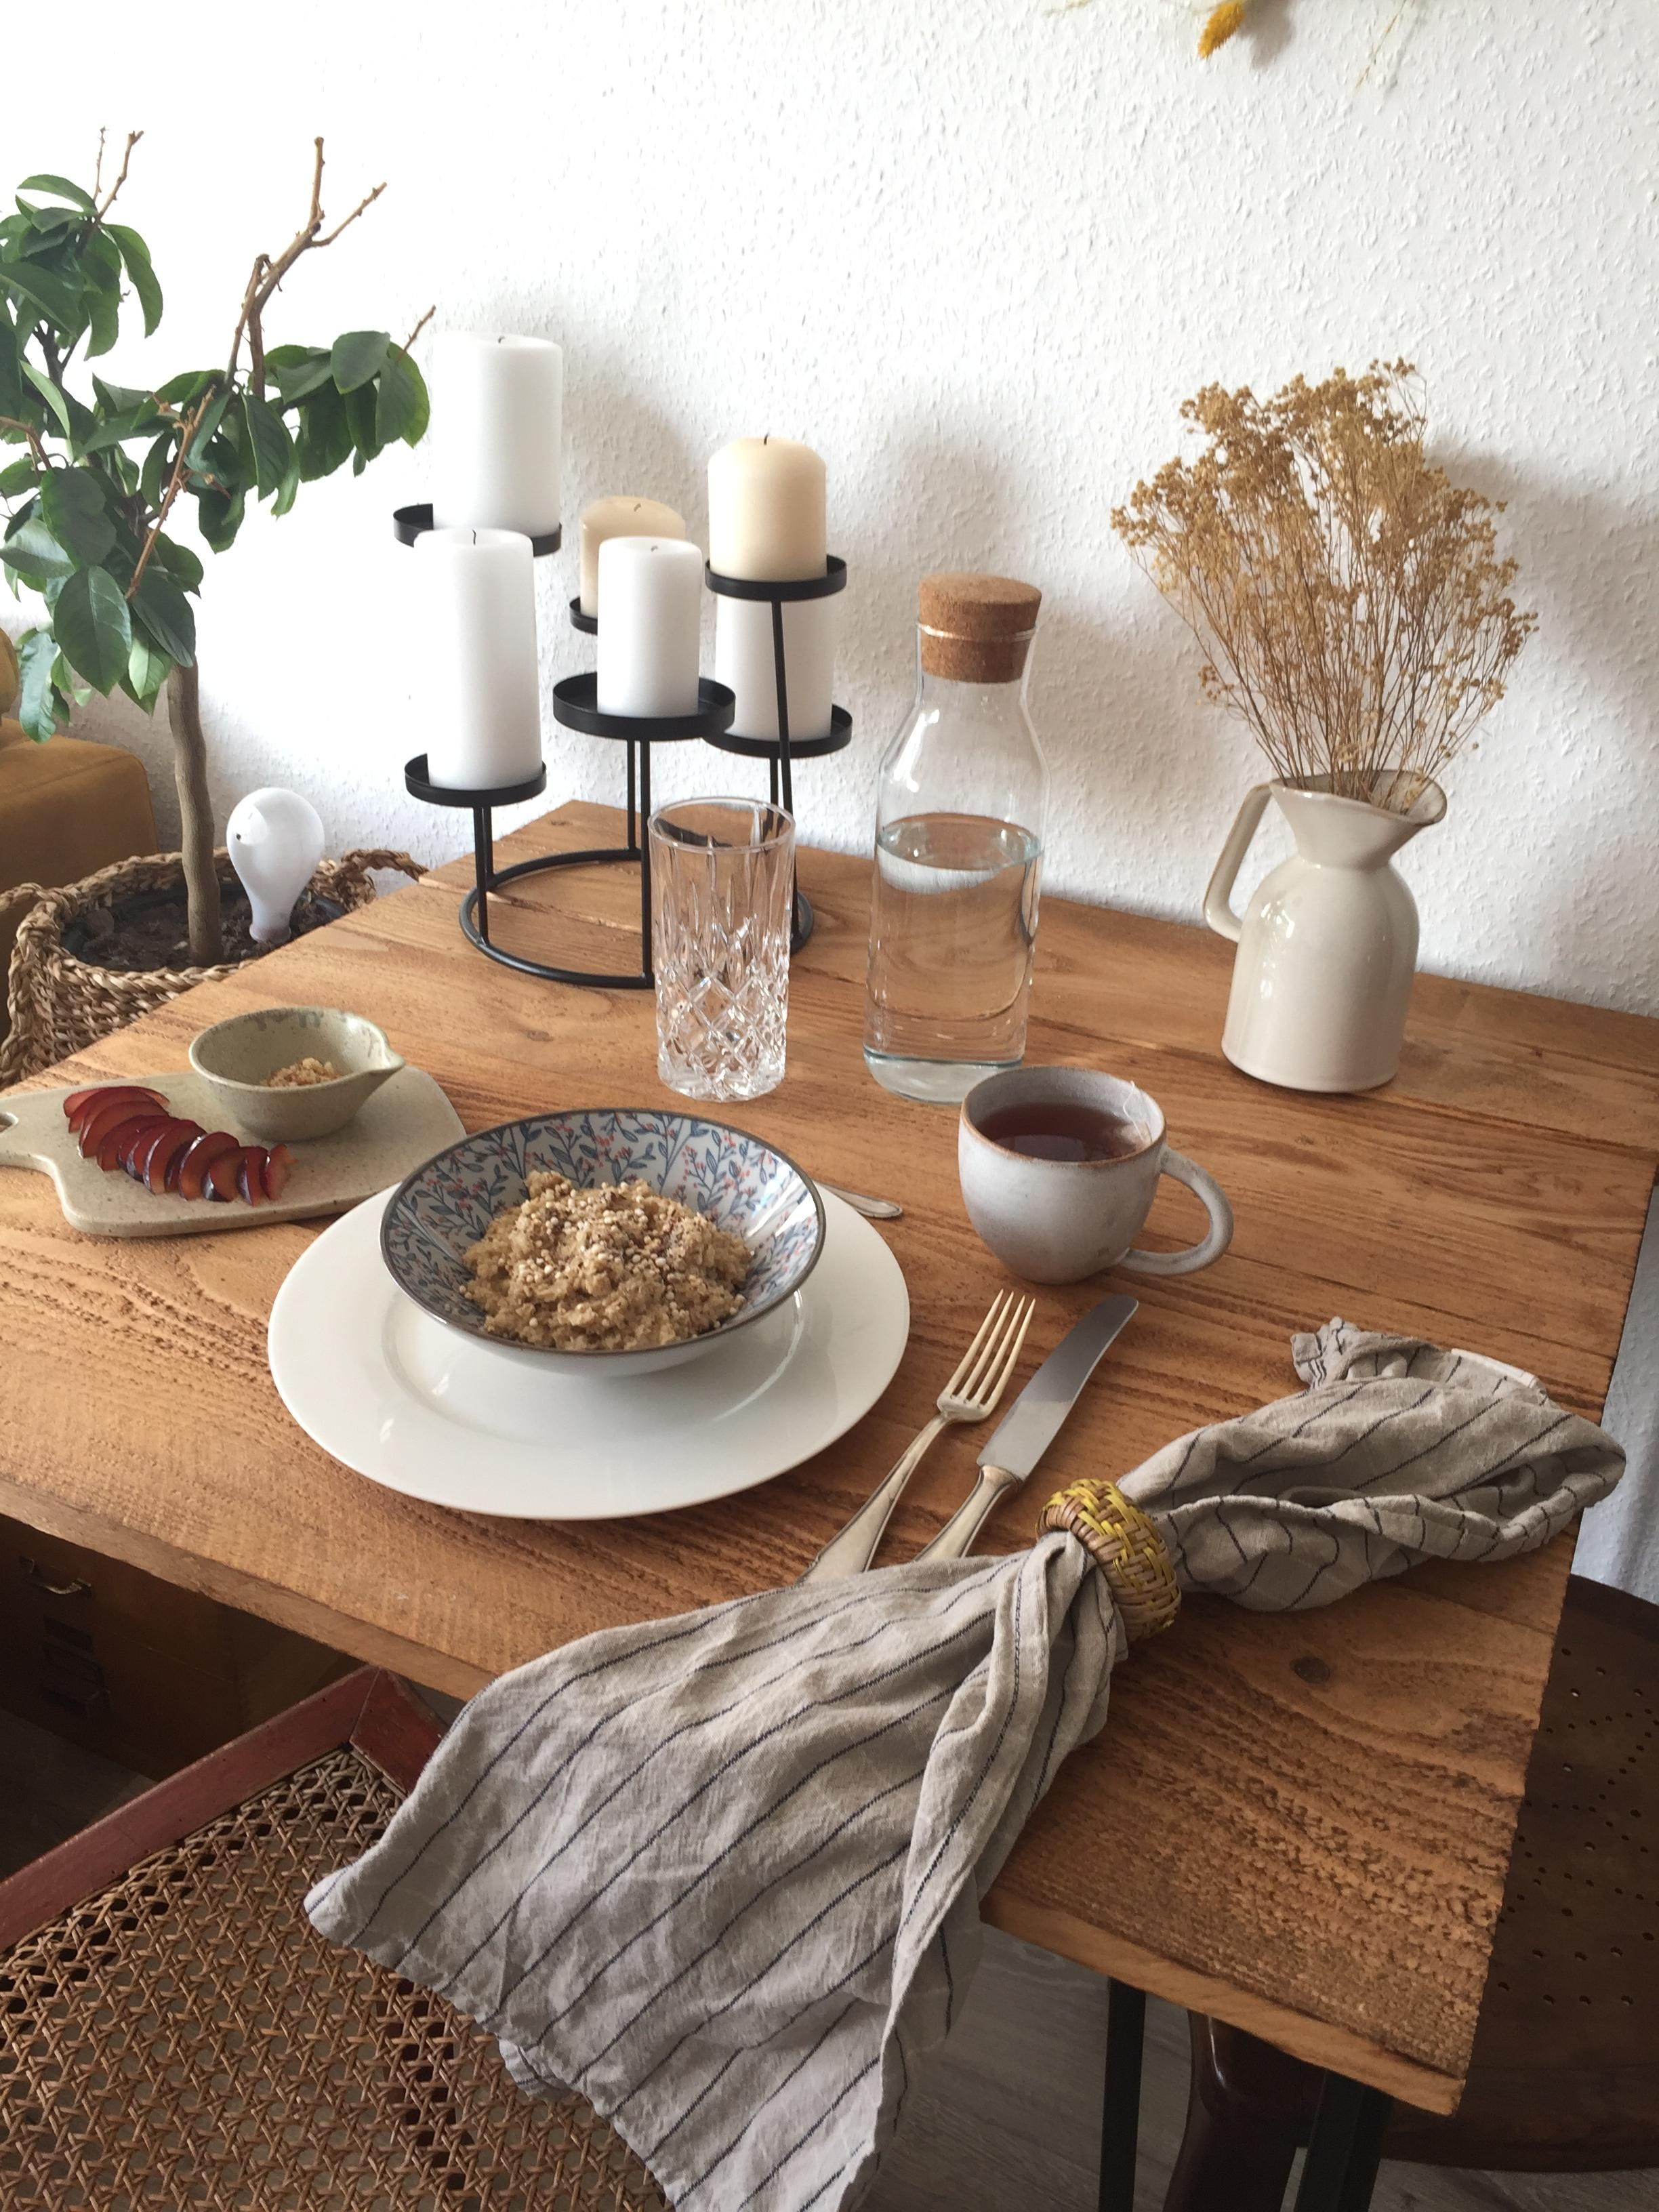 Tischlein Deck dich 